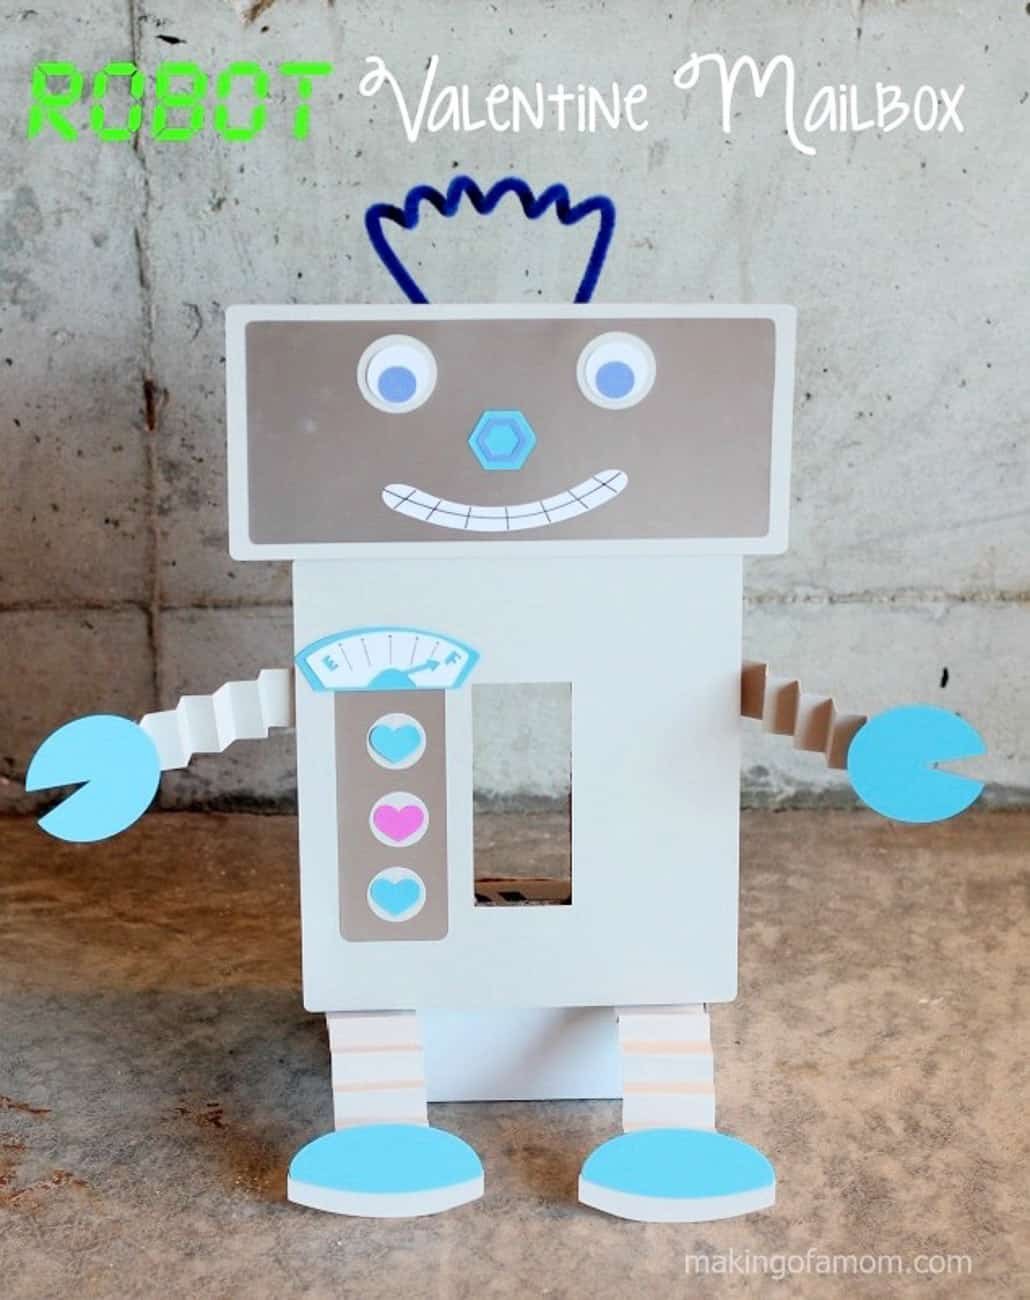 Valentine crafts for kids robot box